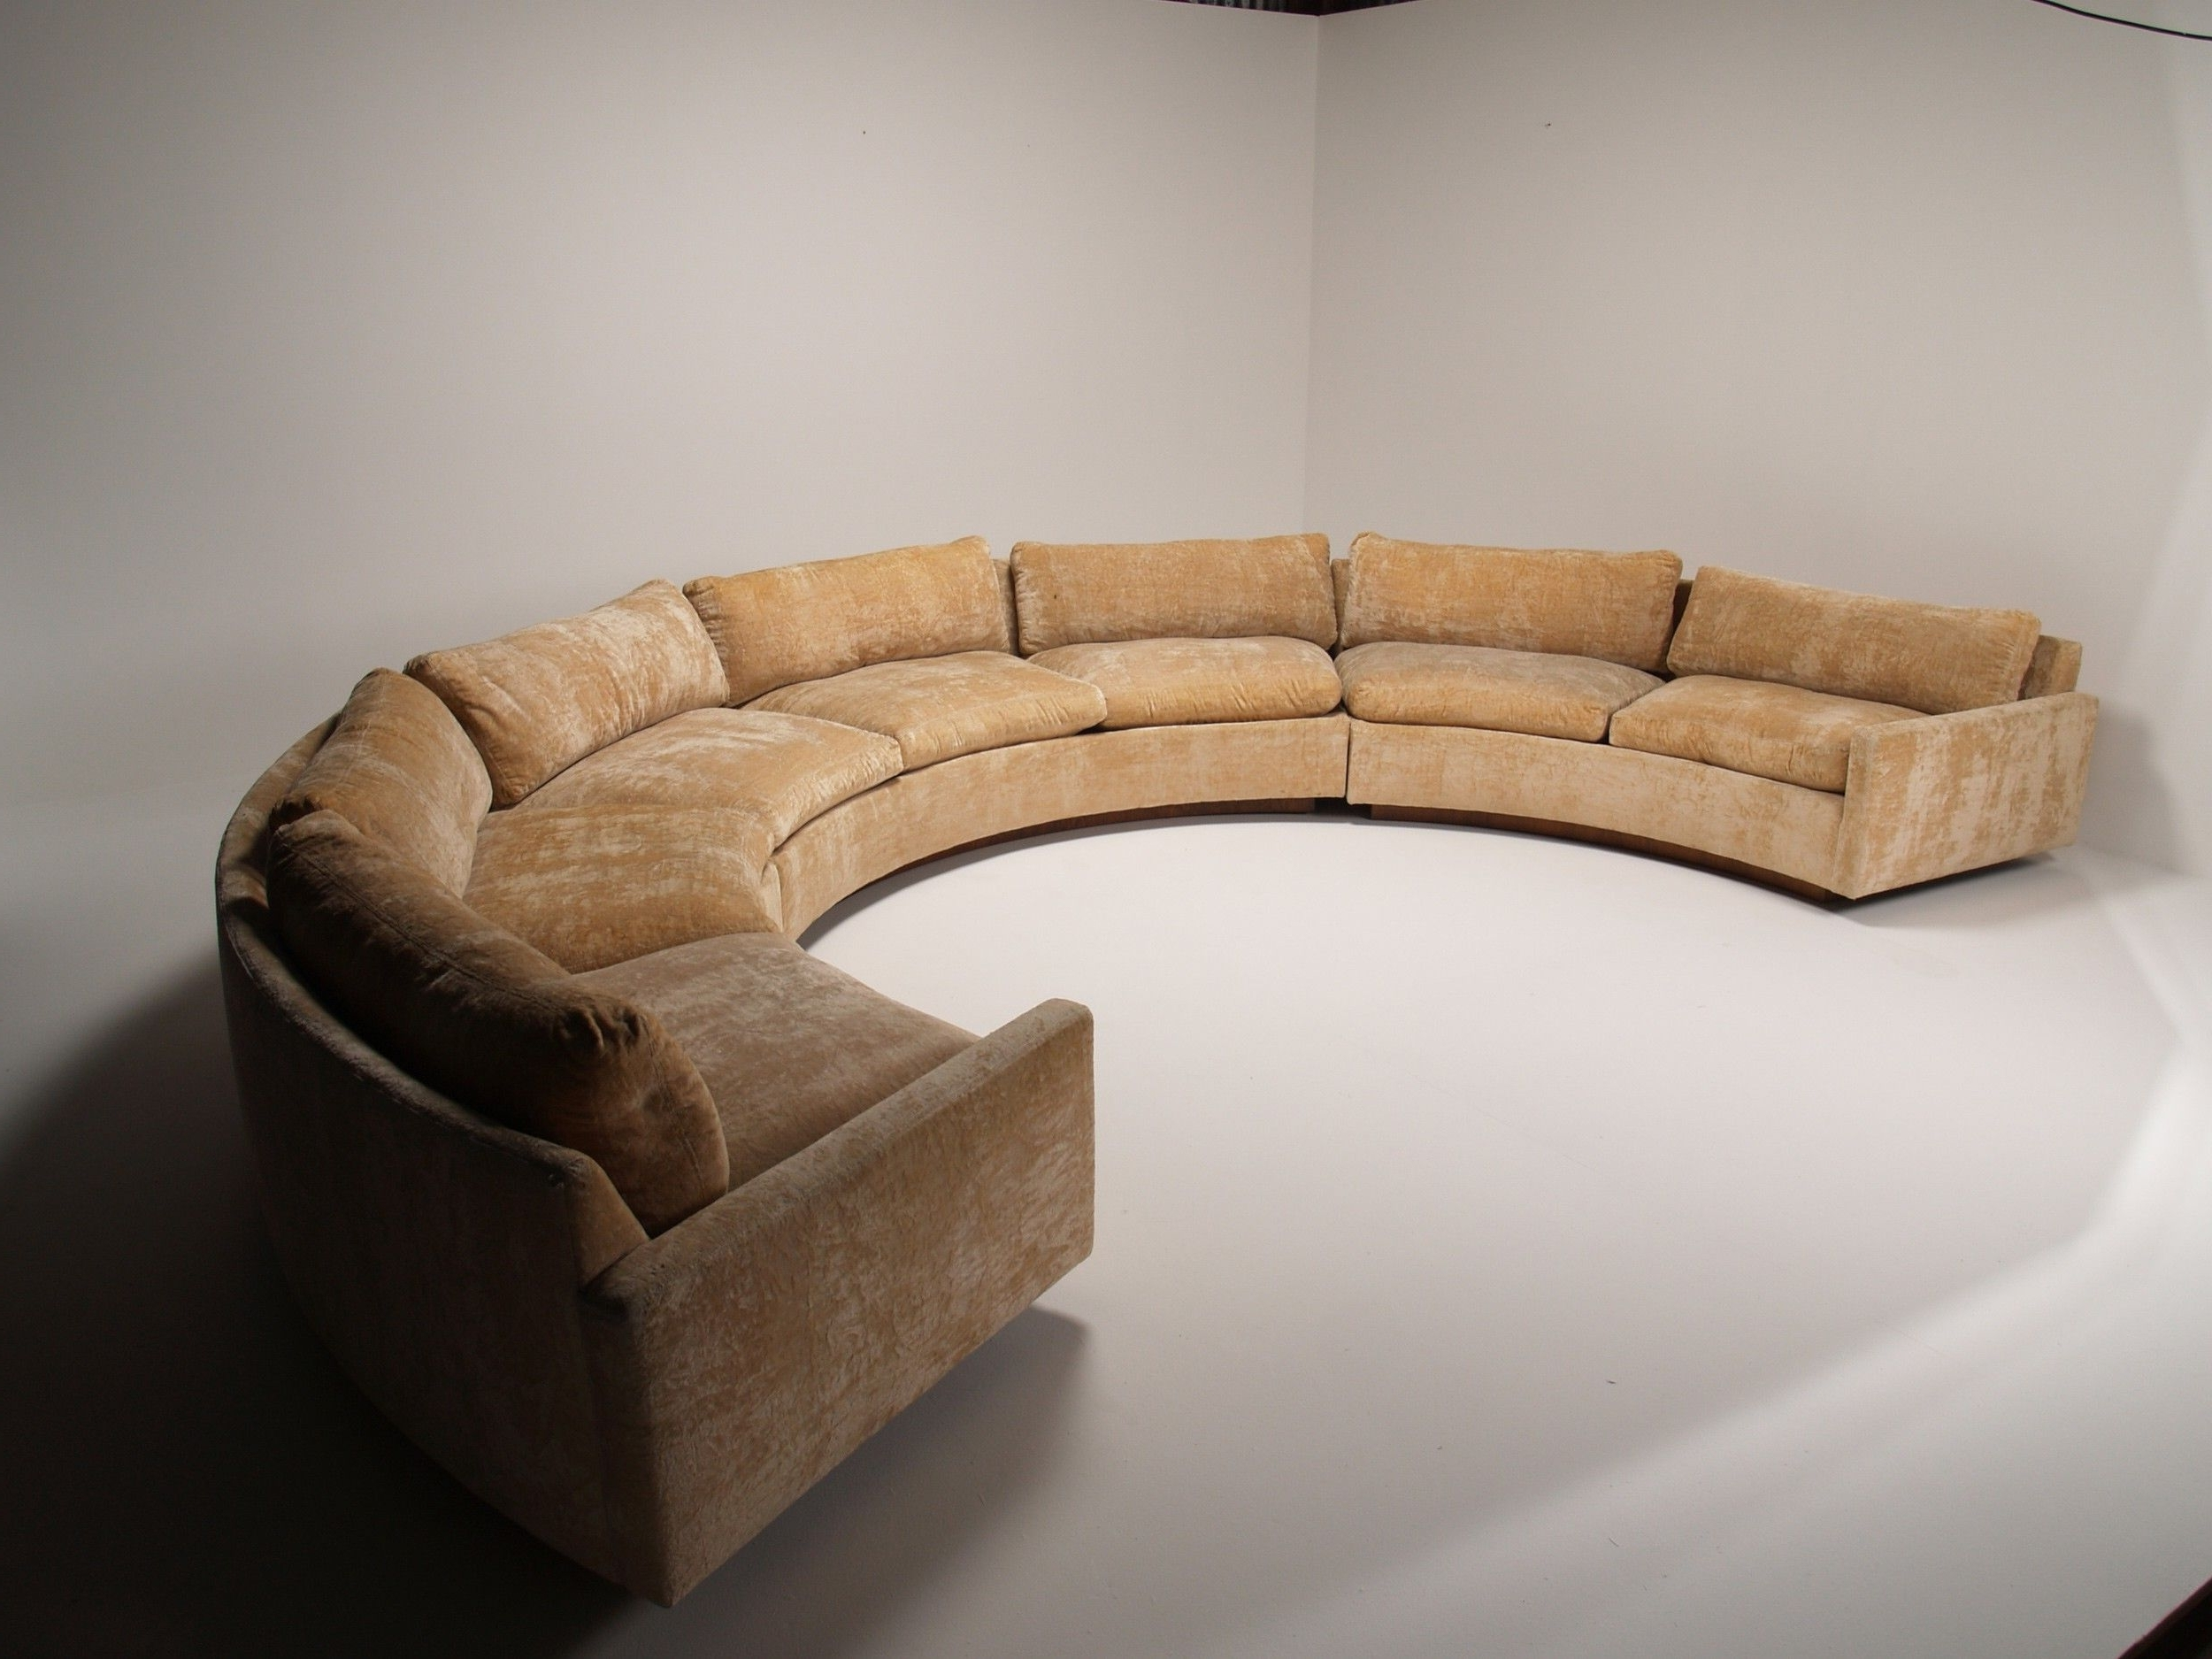 Semicircular Sofas With Famous Popular Grey Velvet Curved Couch Without Cushions As Well As In (View 12 of 15)